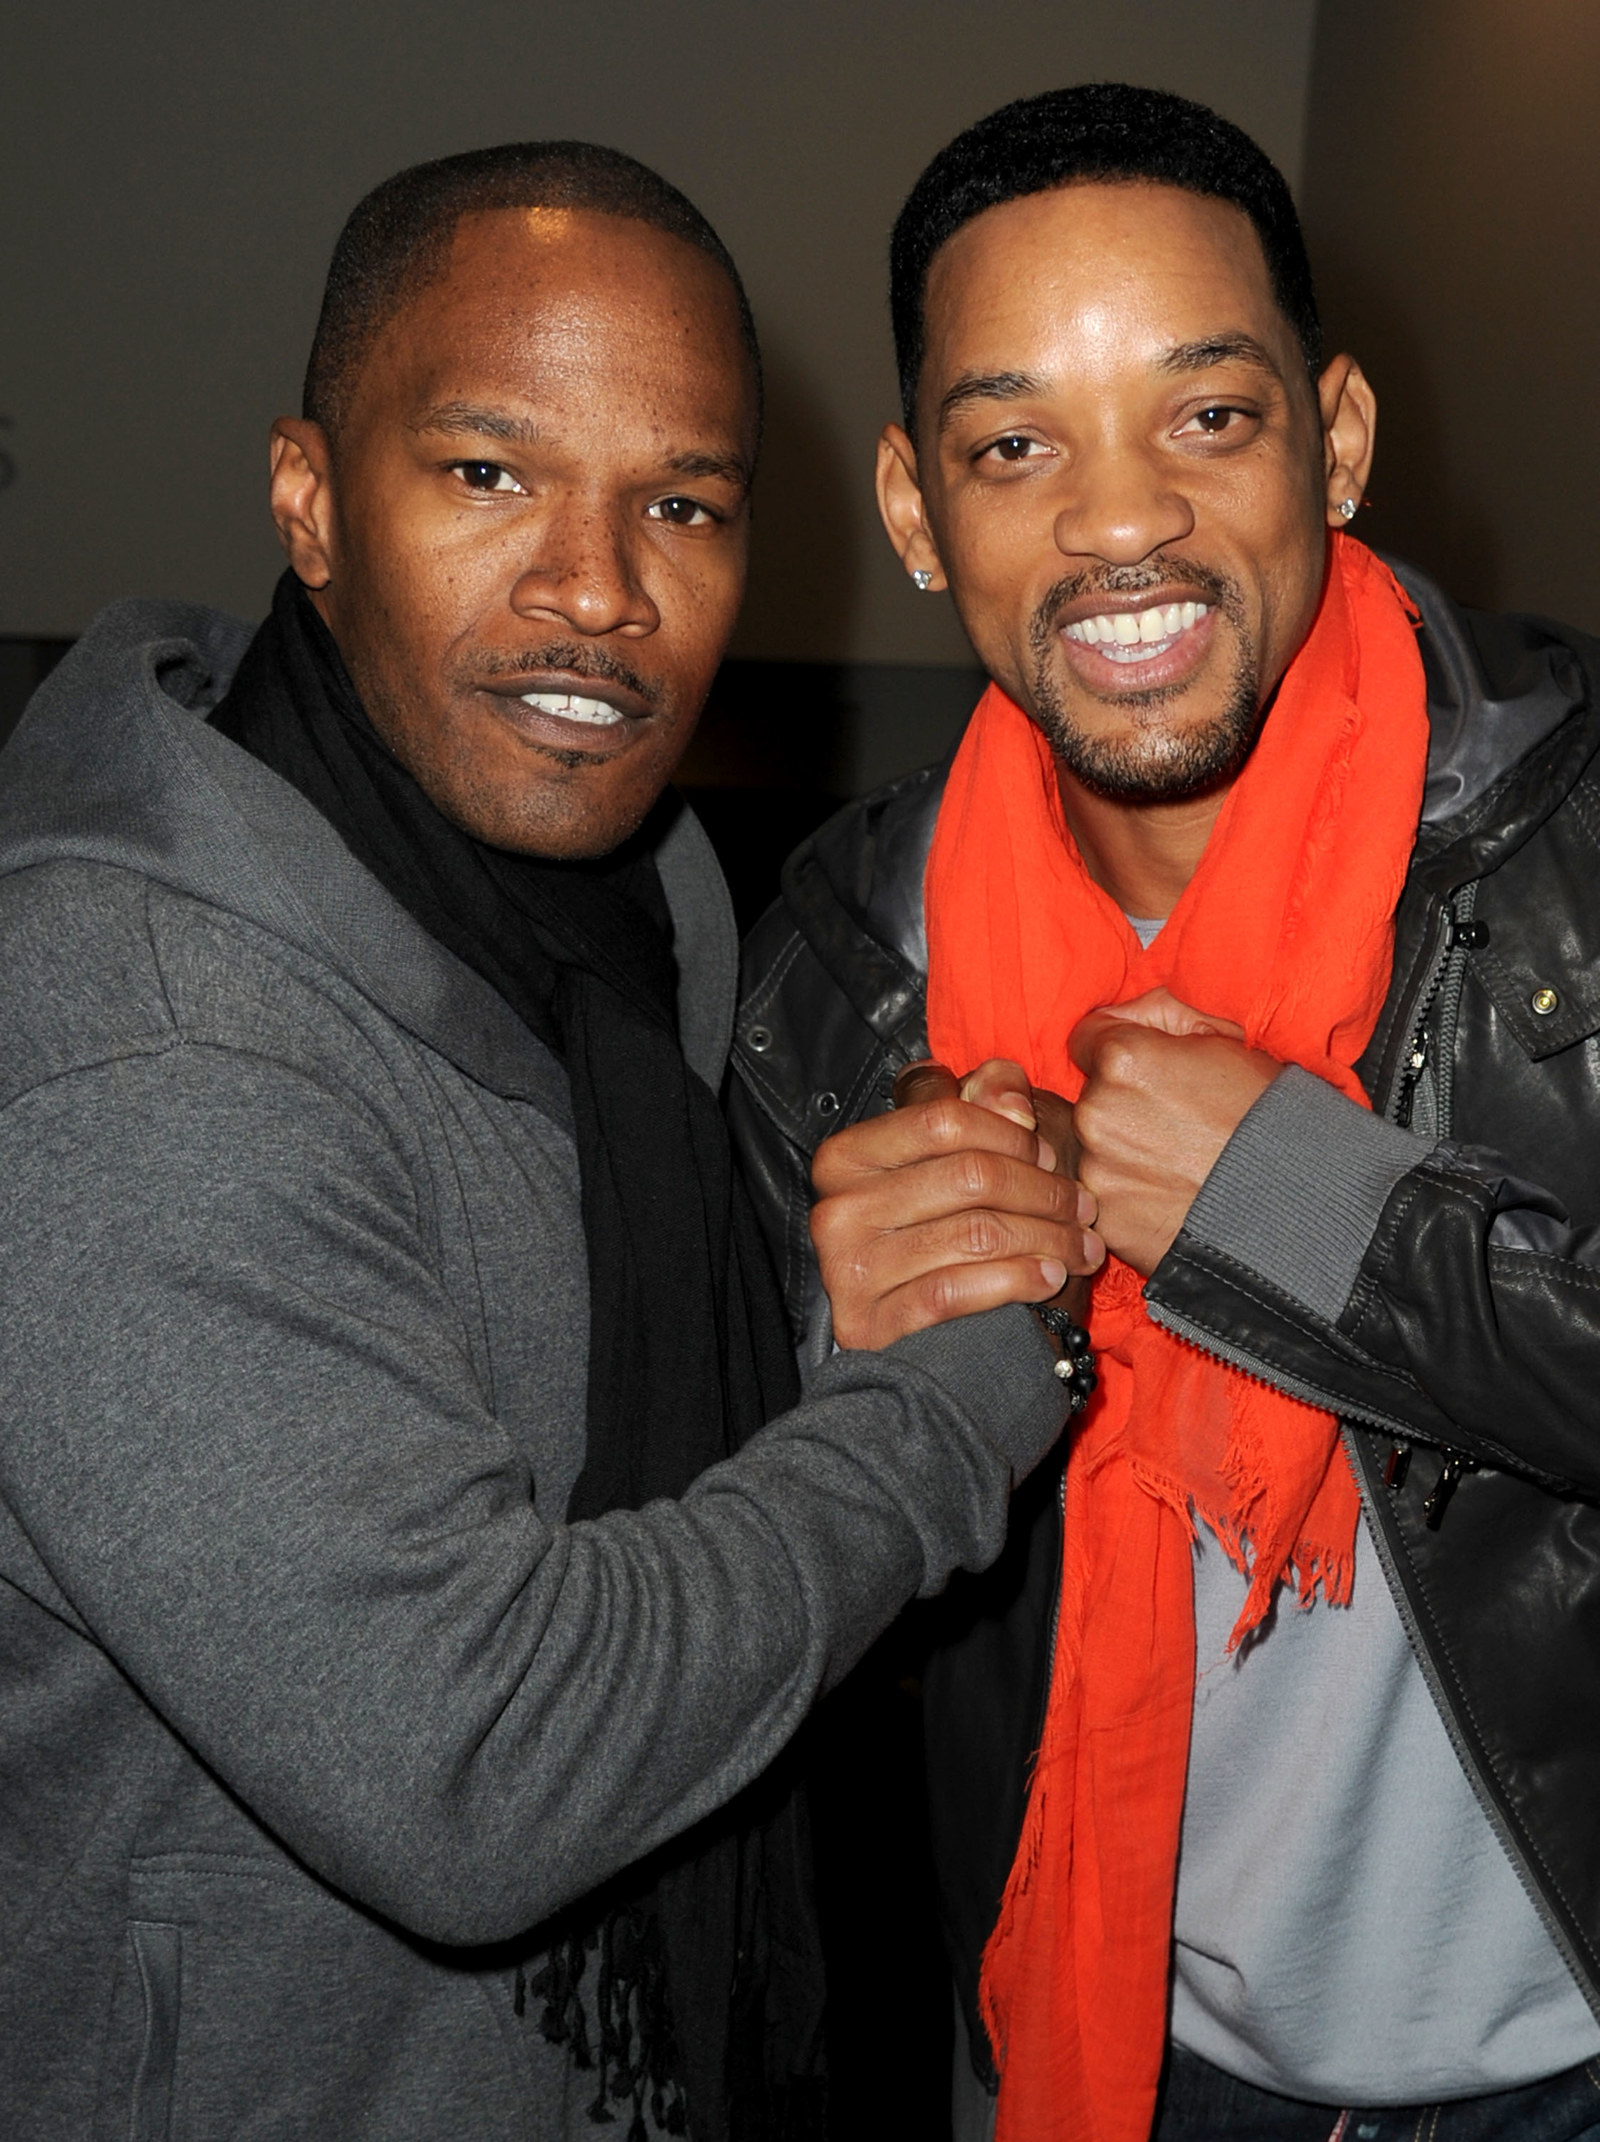 Jamie Foxx couldn't contain his excitement